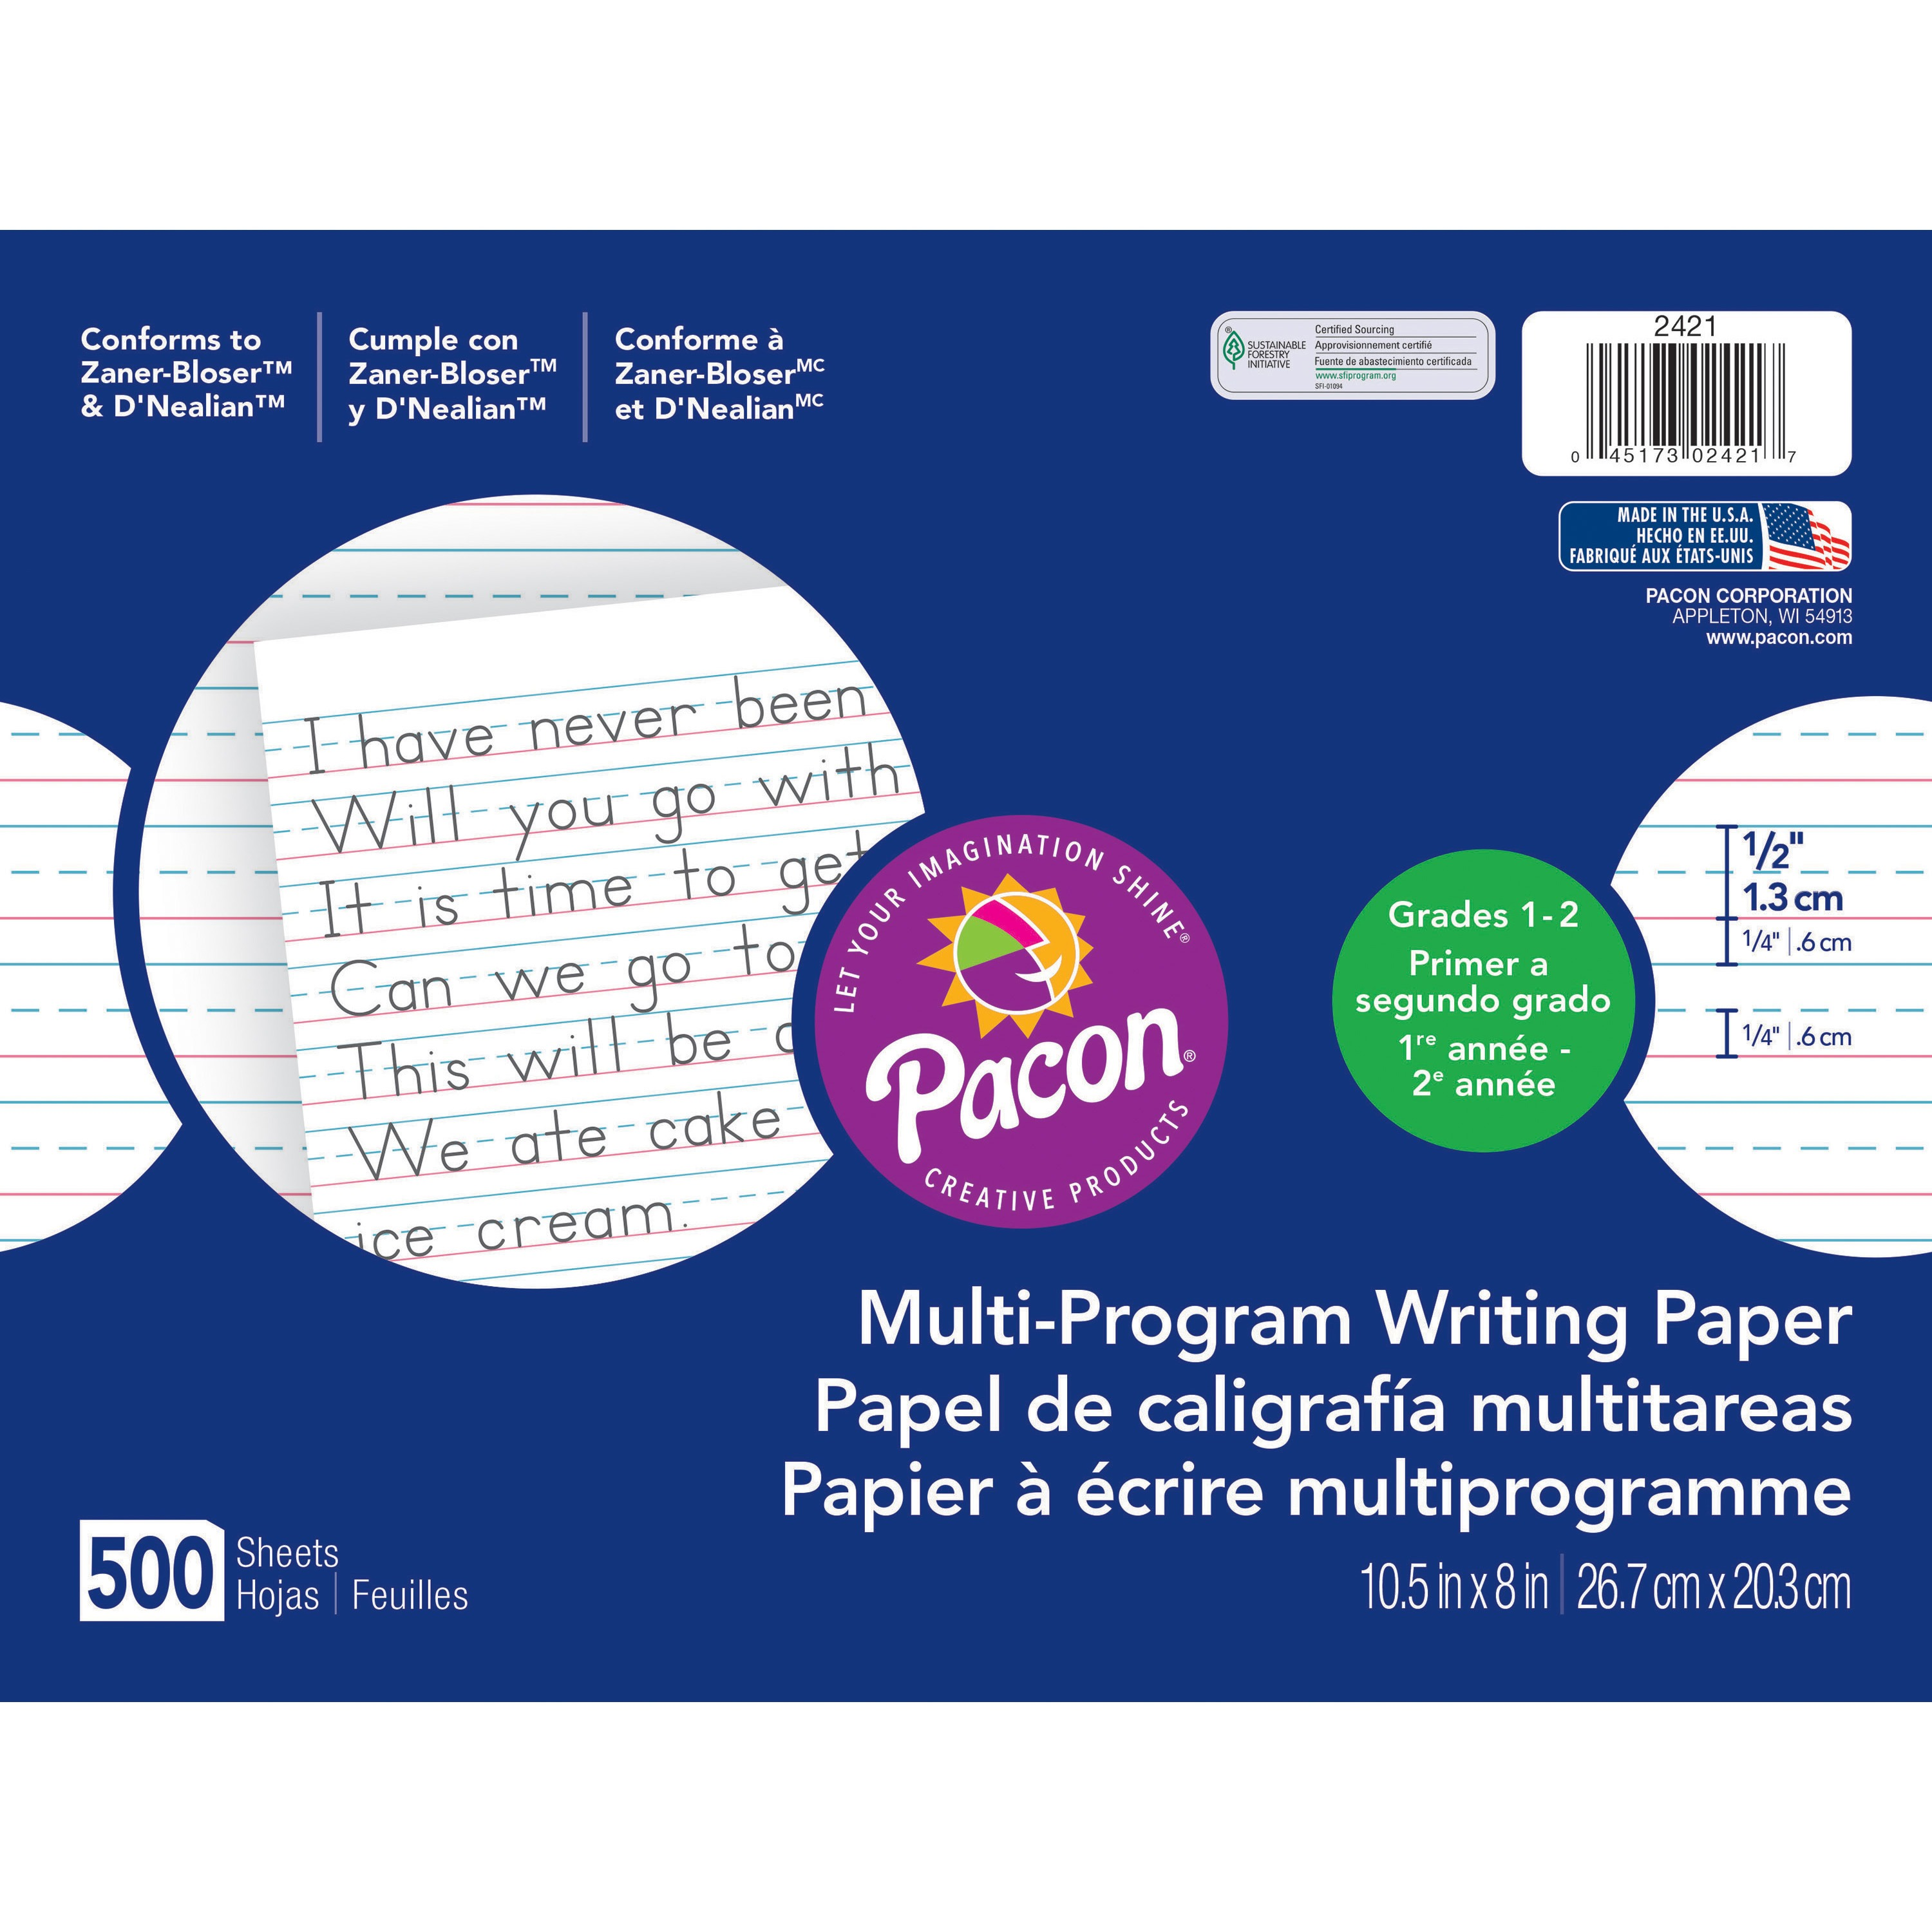 "Pacon Handwriting Paper Tablet, Grades 1 & 2, Ruled Long, 10.5"" x 8"", 500 Sheets"